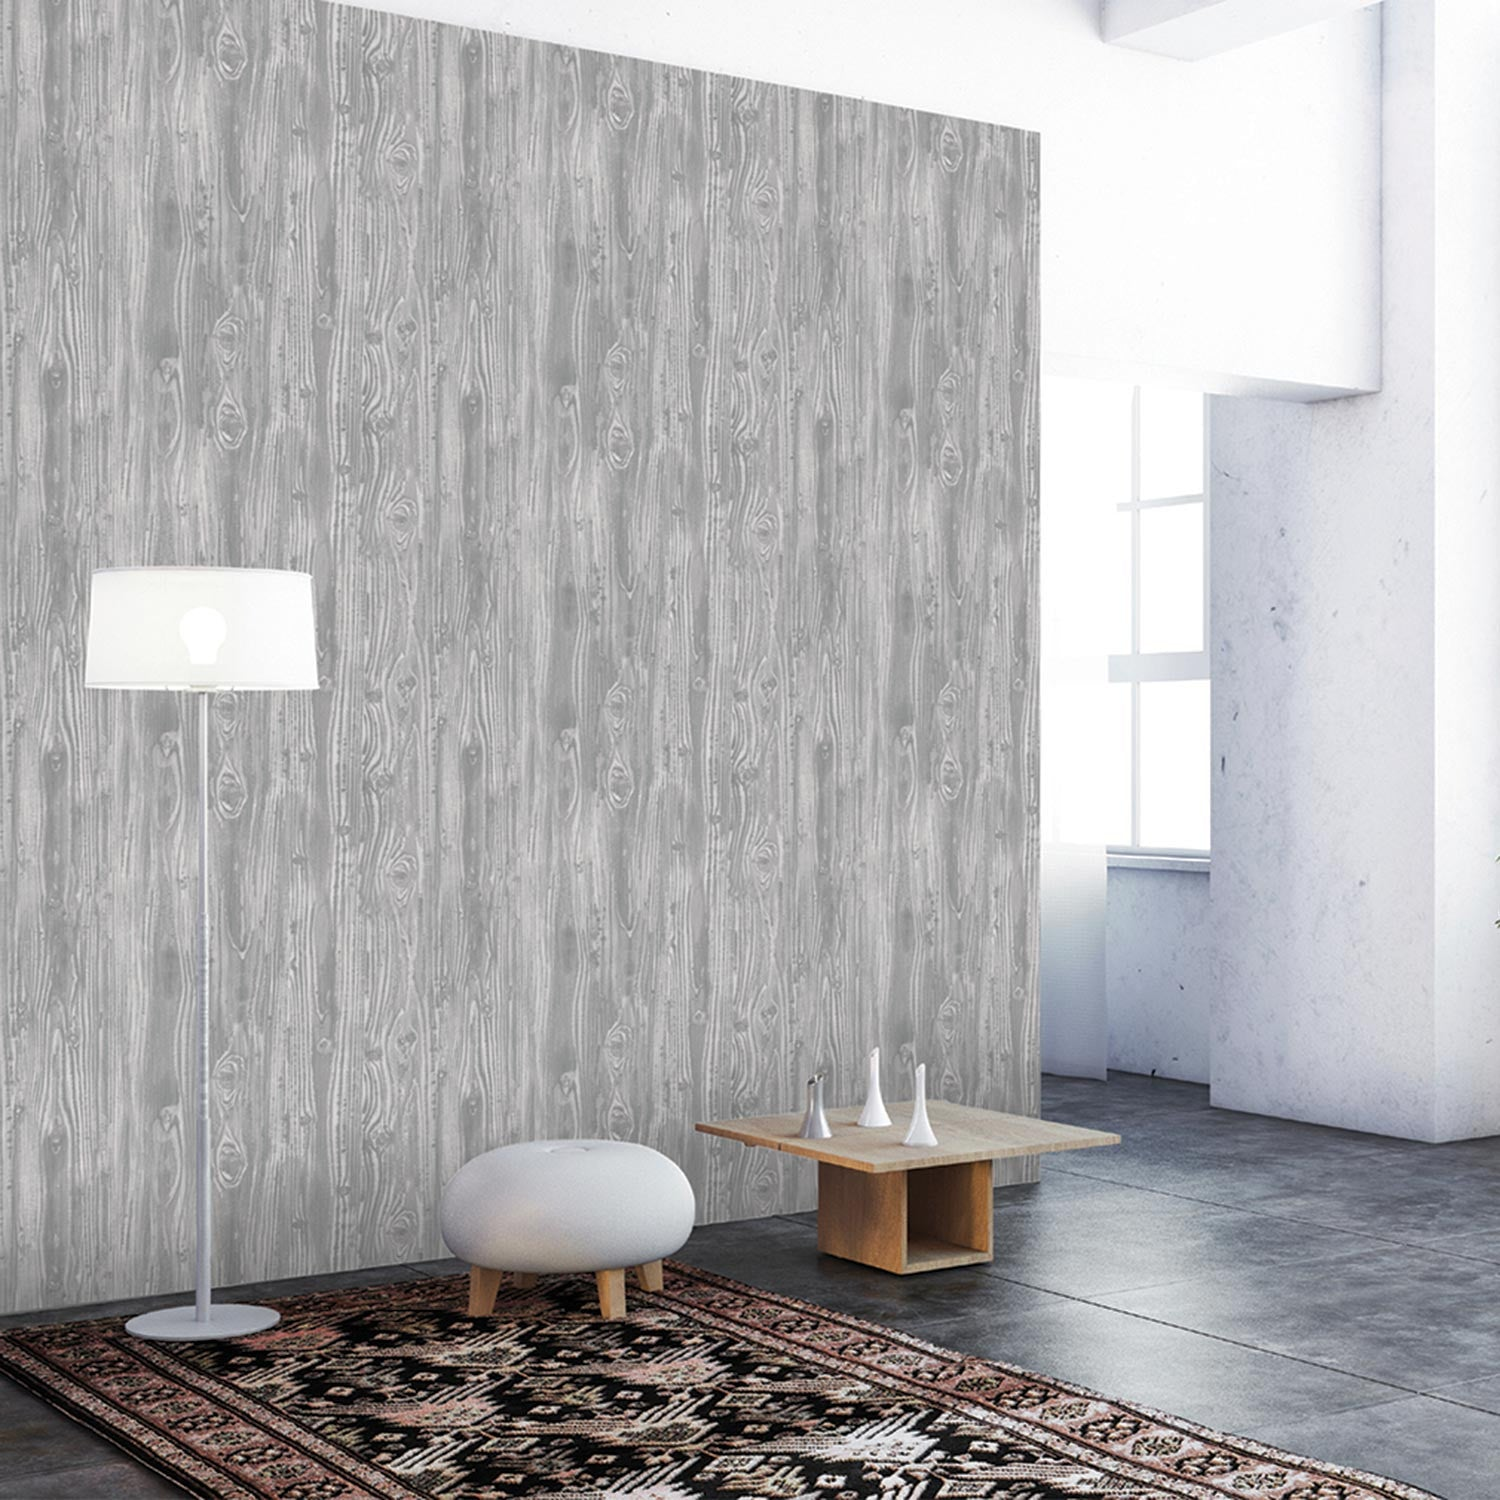 Temporary Wall Paper temporary wallpaper - woodgrain - pewter– dormify